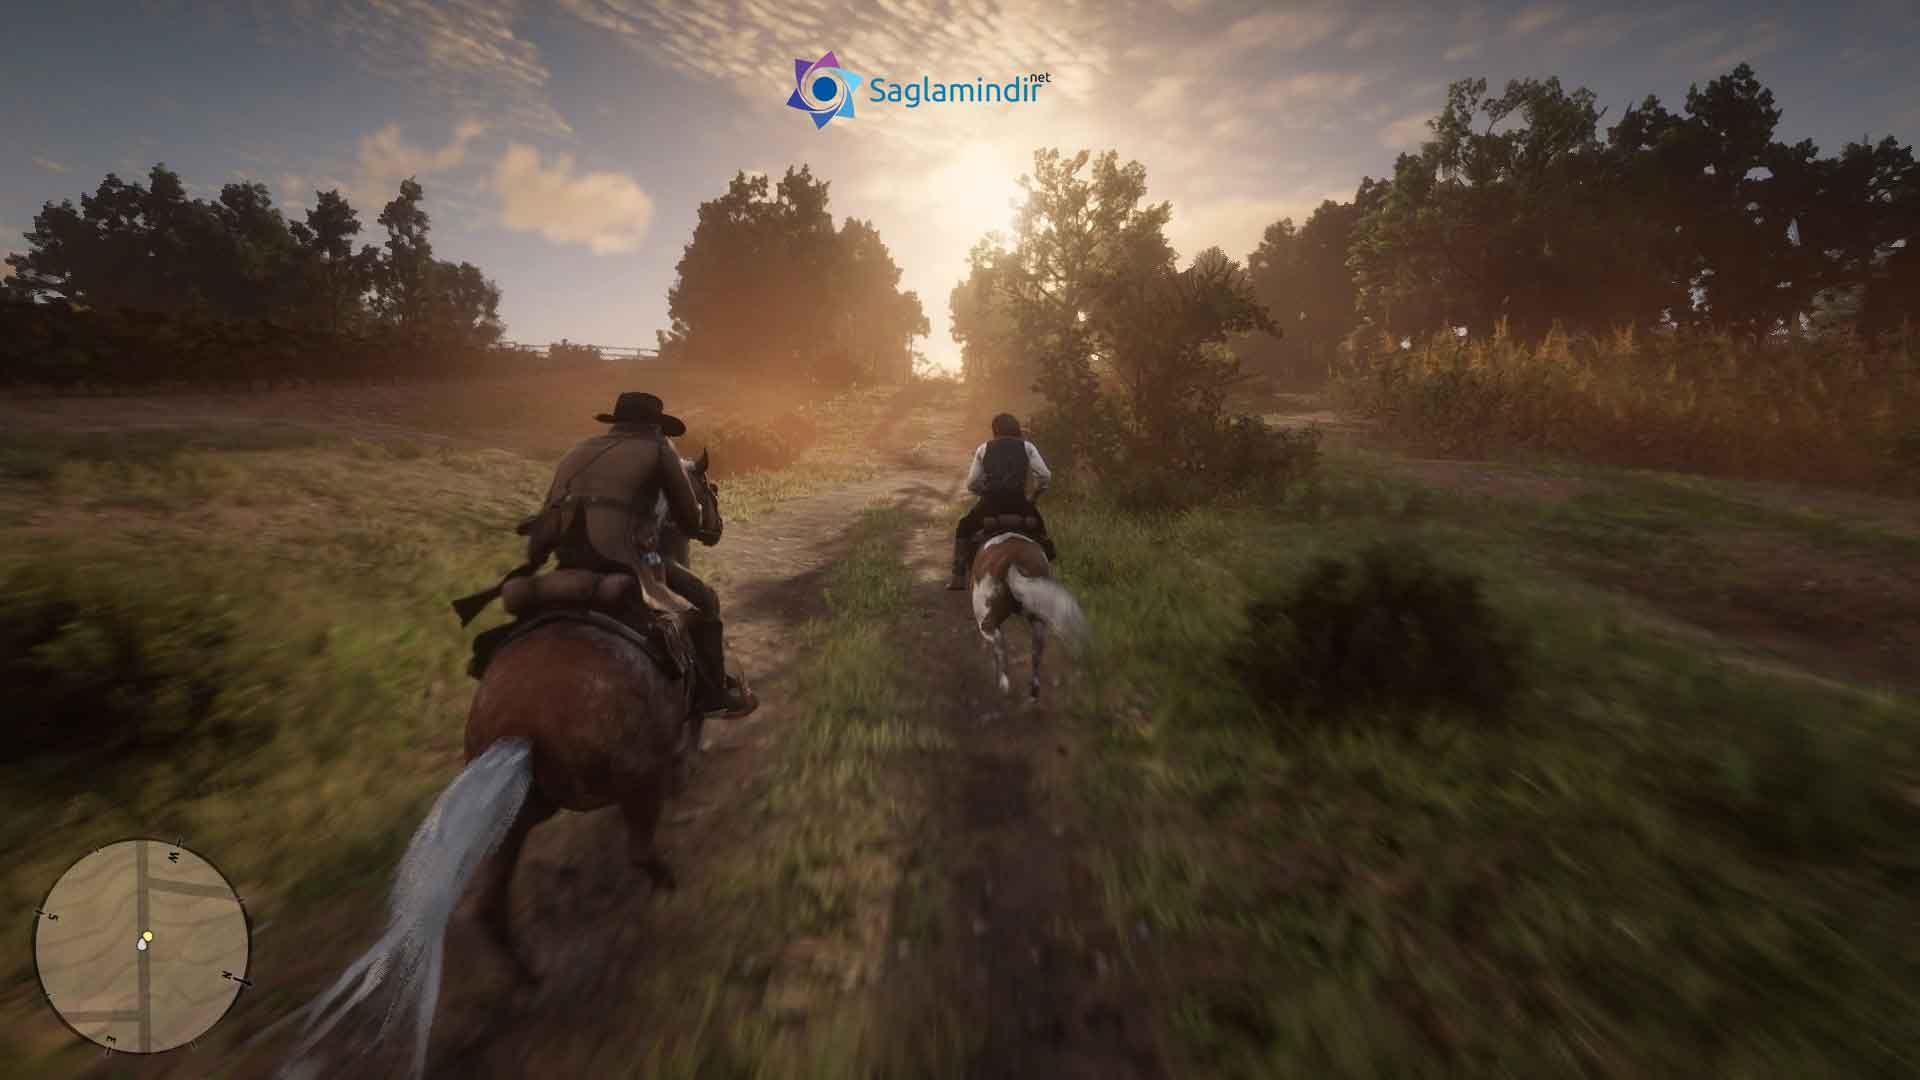 Red Dead Redemption 2 saglamindir